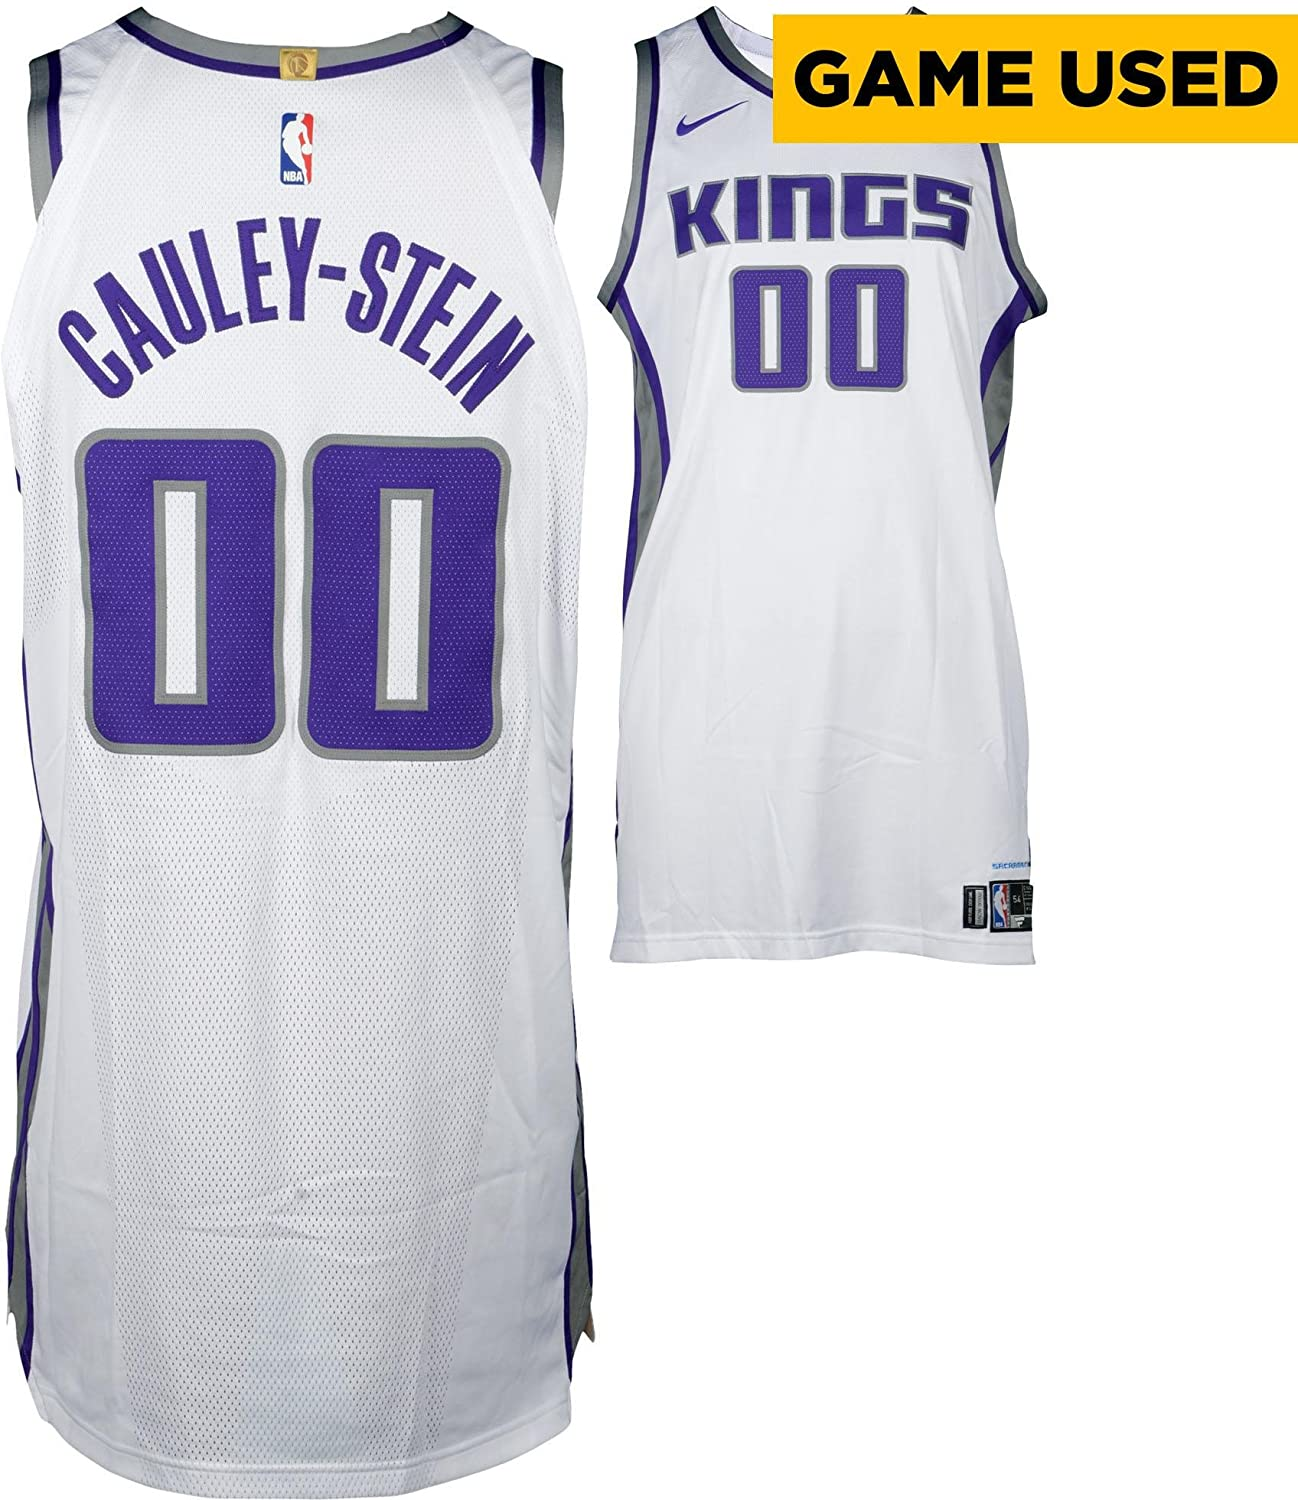 c6819437 Willie Cauley-Stein Sacramento Kings Game-Used #00 White Jersey vs. Dallas  Mavericks on March 27, 2018 - Size 54+6 - Fanatics Authentic Certified at  ...